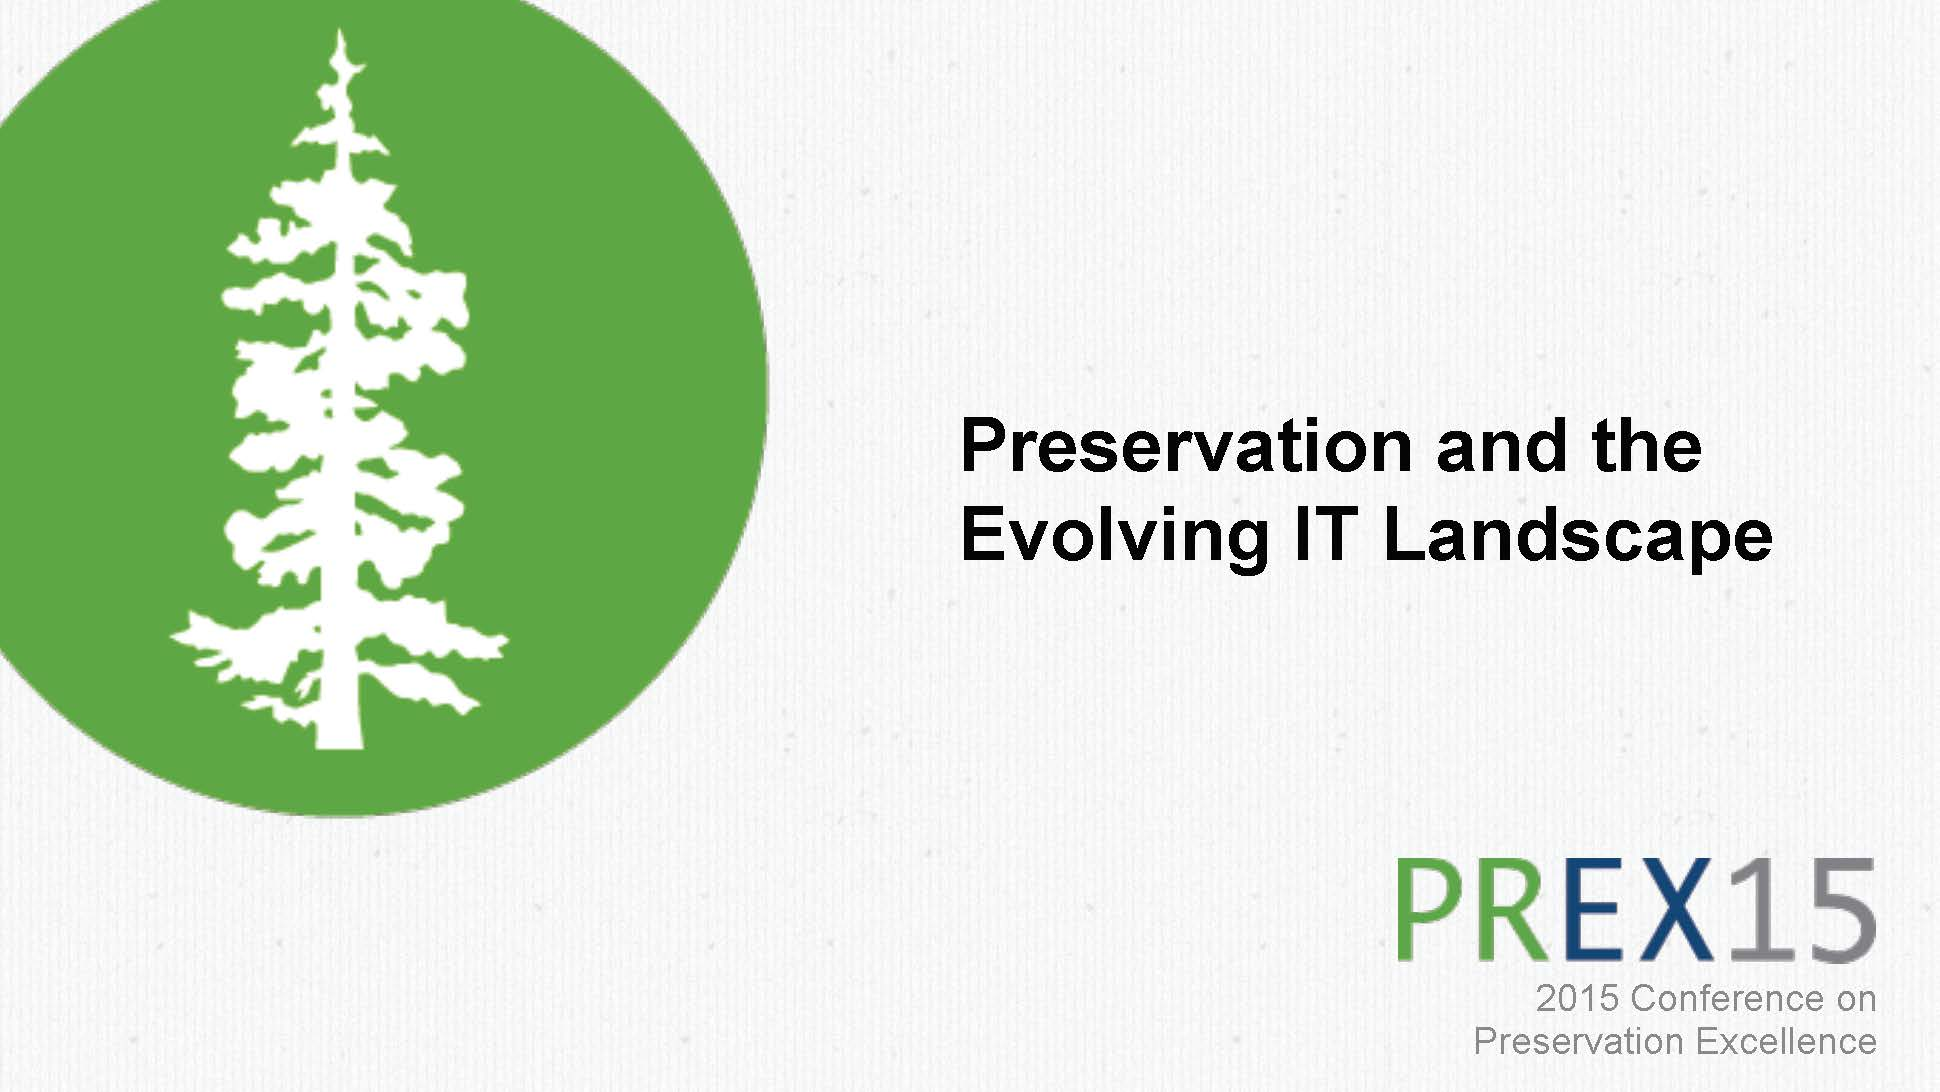 Preservation and the Evolving IT Landscape